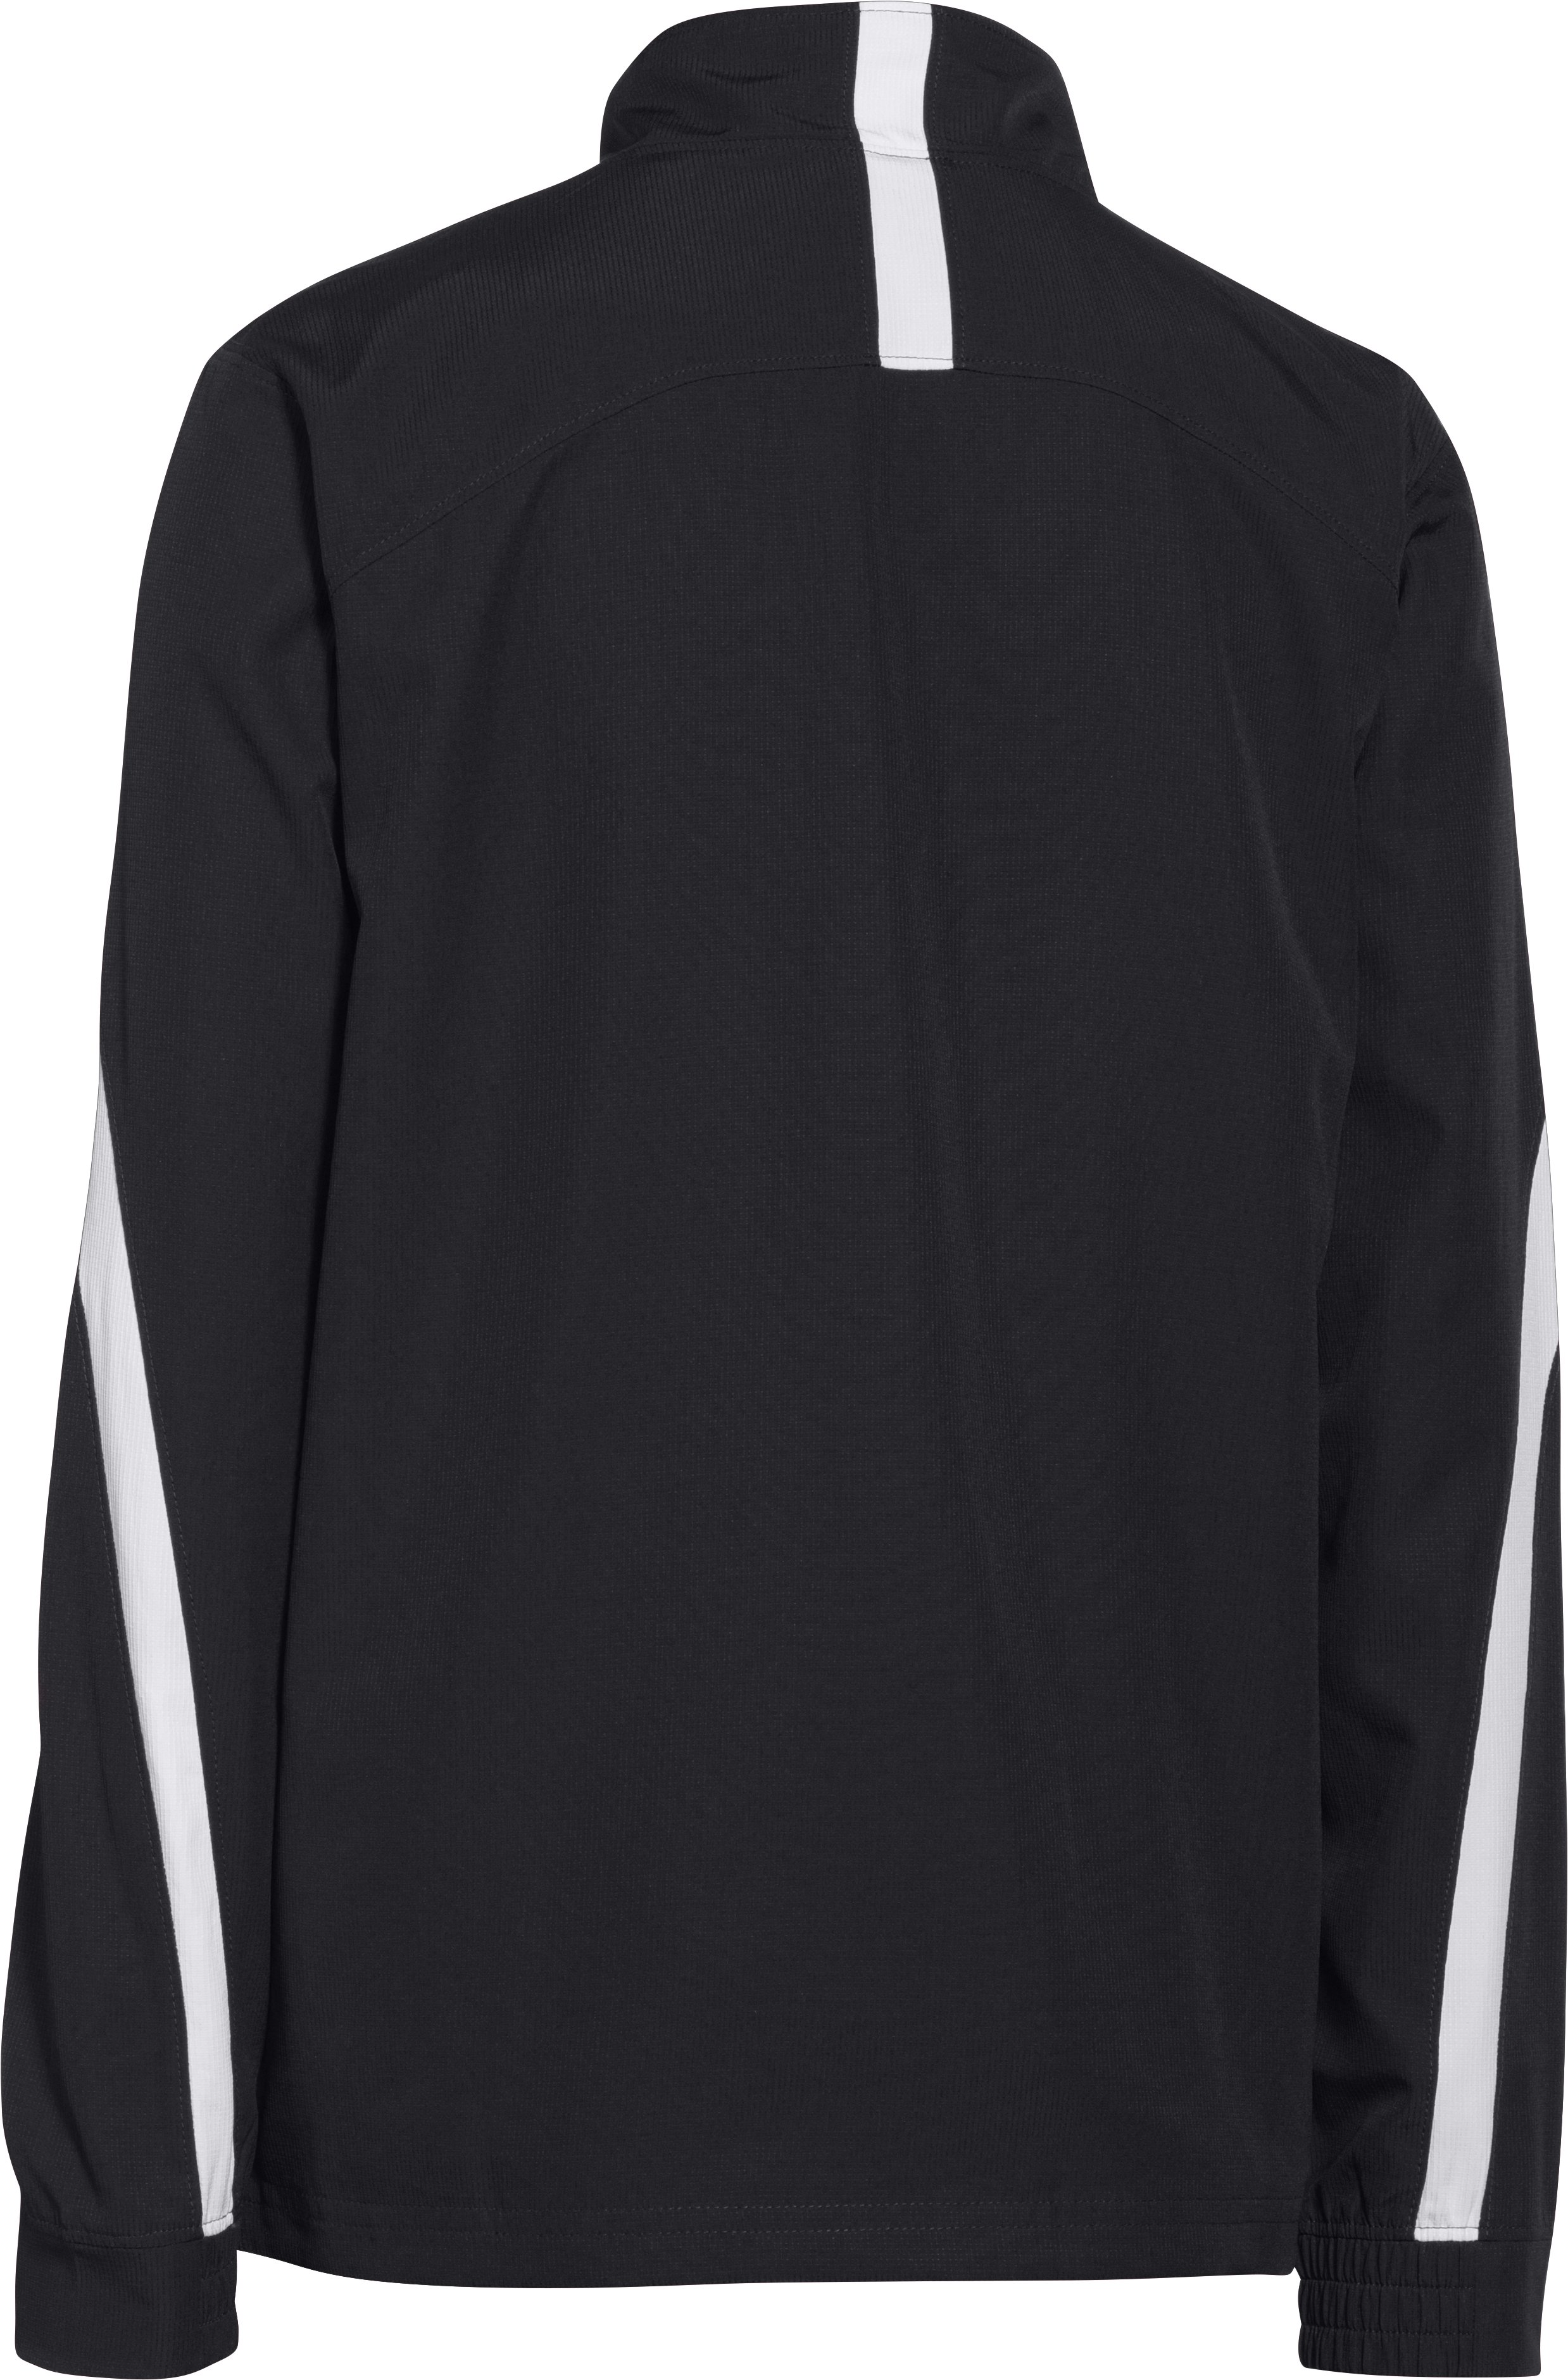 Boys' UA Essential Warm-Up Jacket, Black ,